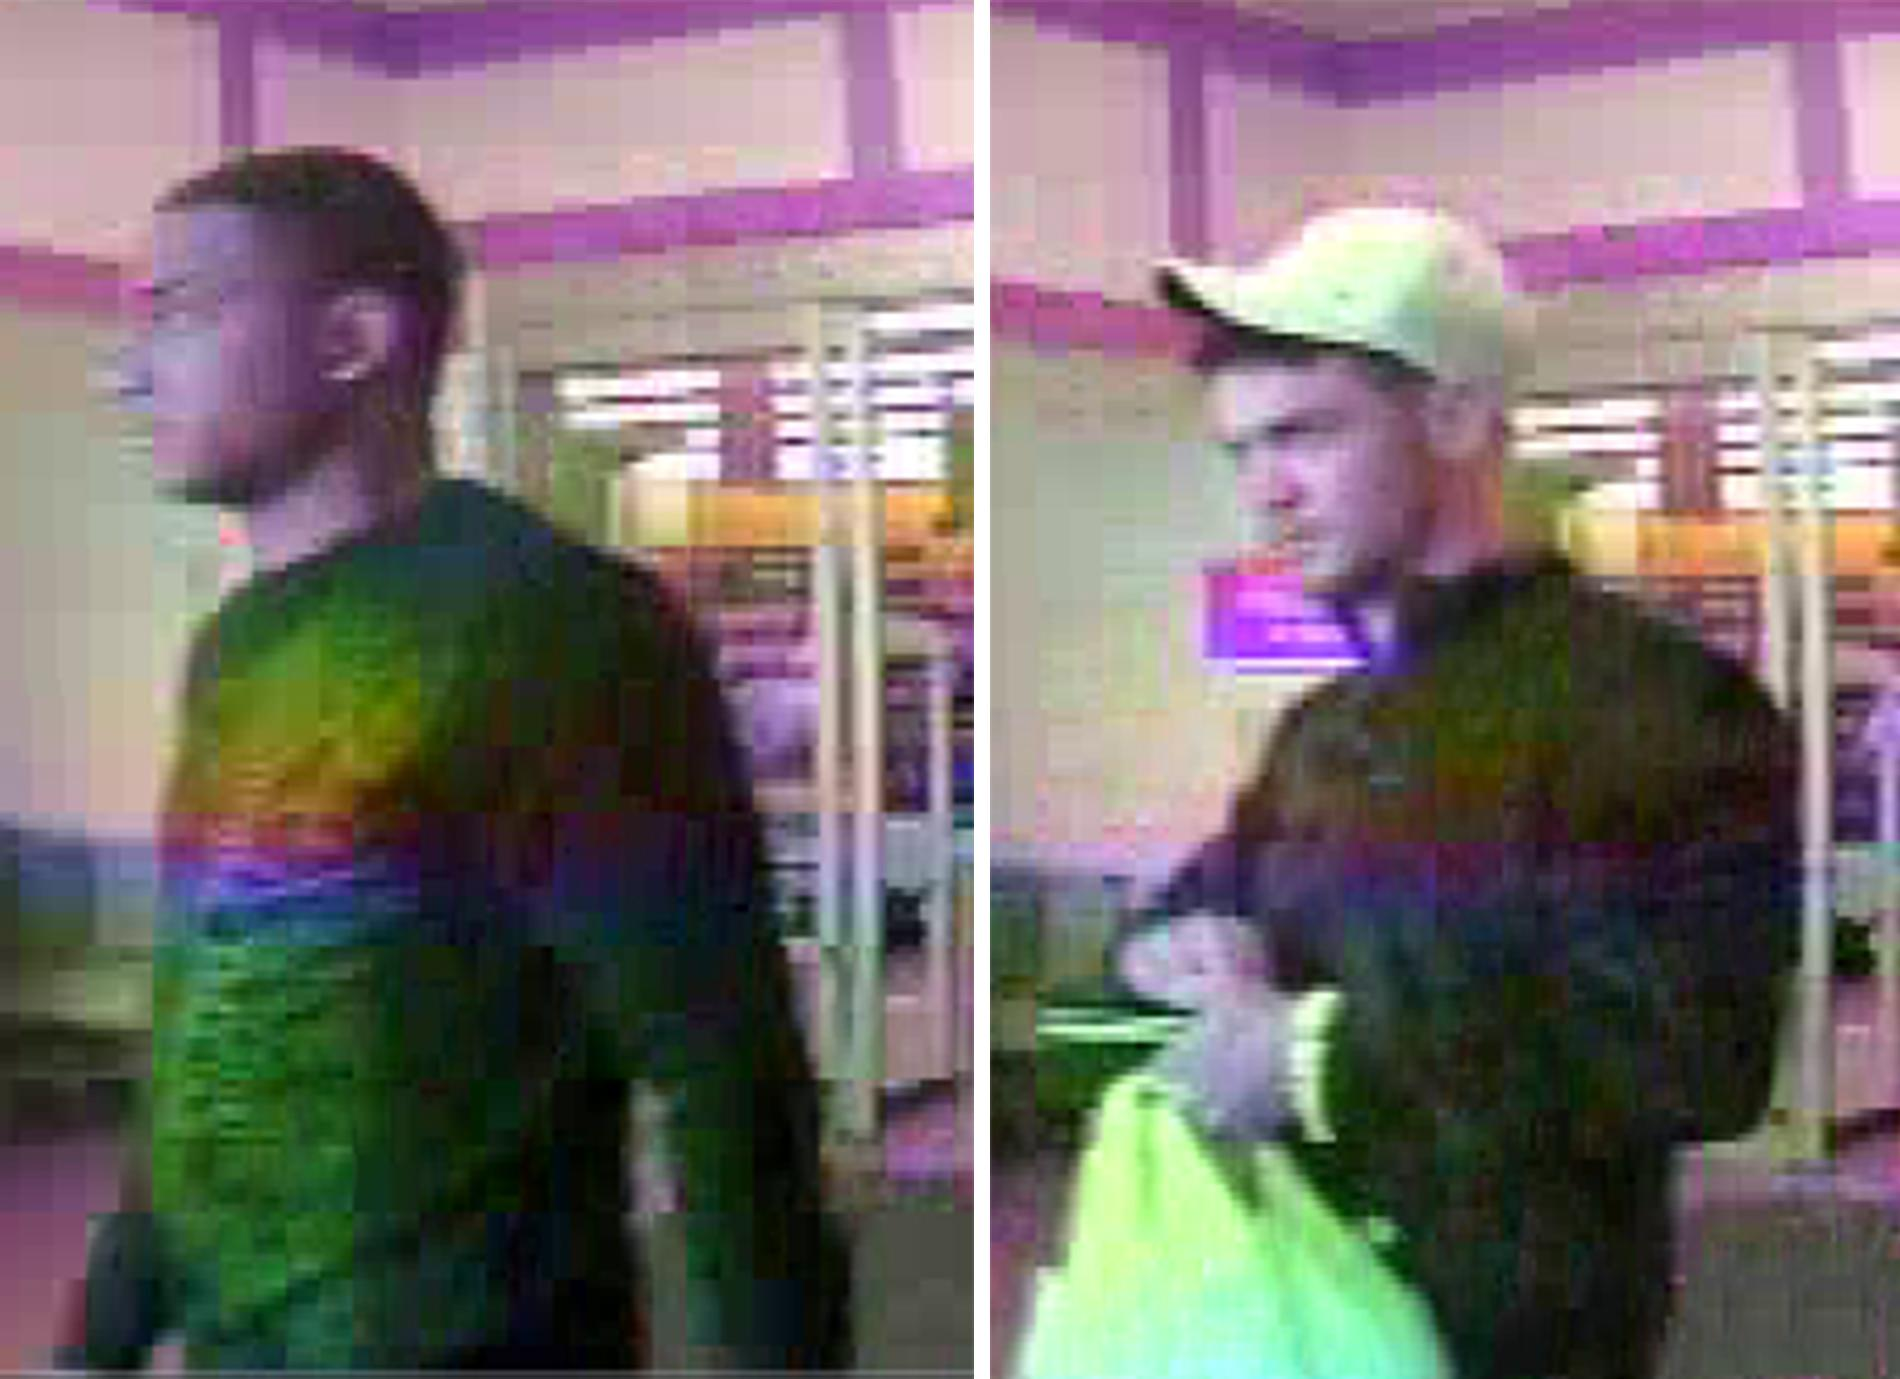 Tulsa police are trying to identify two men they believe used a stolen credit card number at a local business. (Tulsa Police Department)